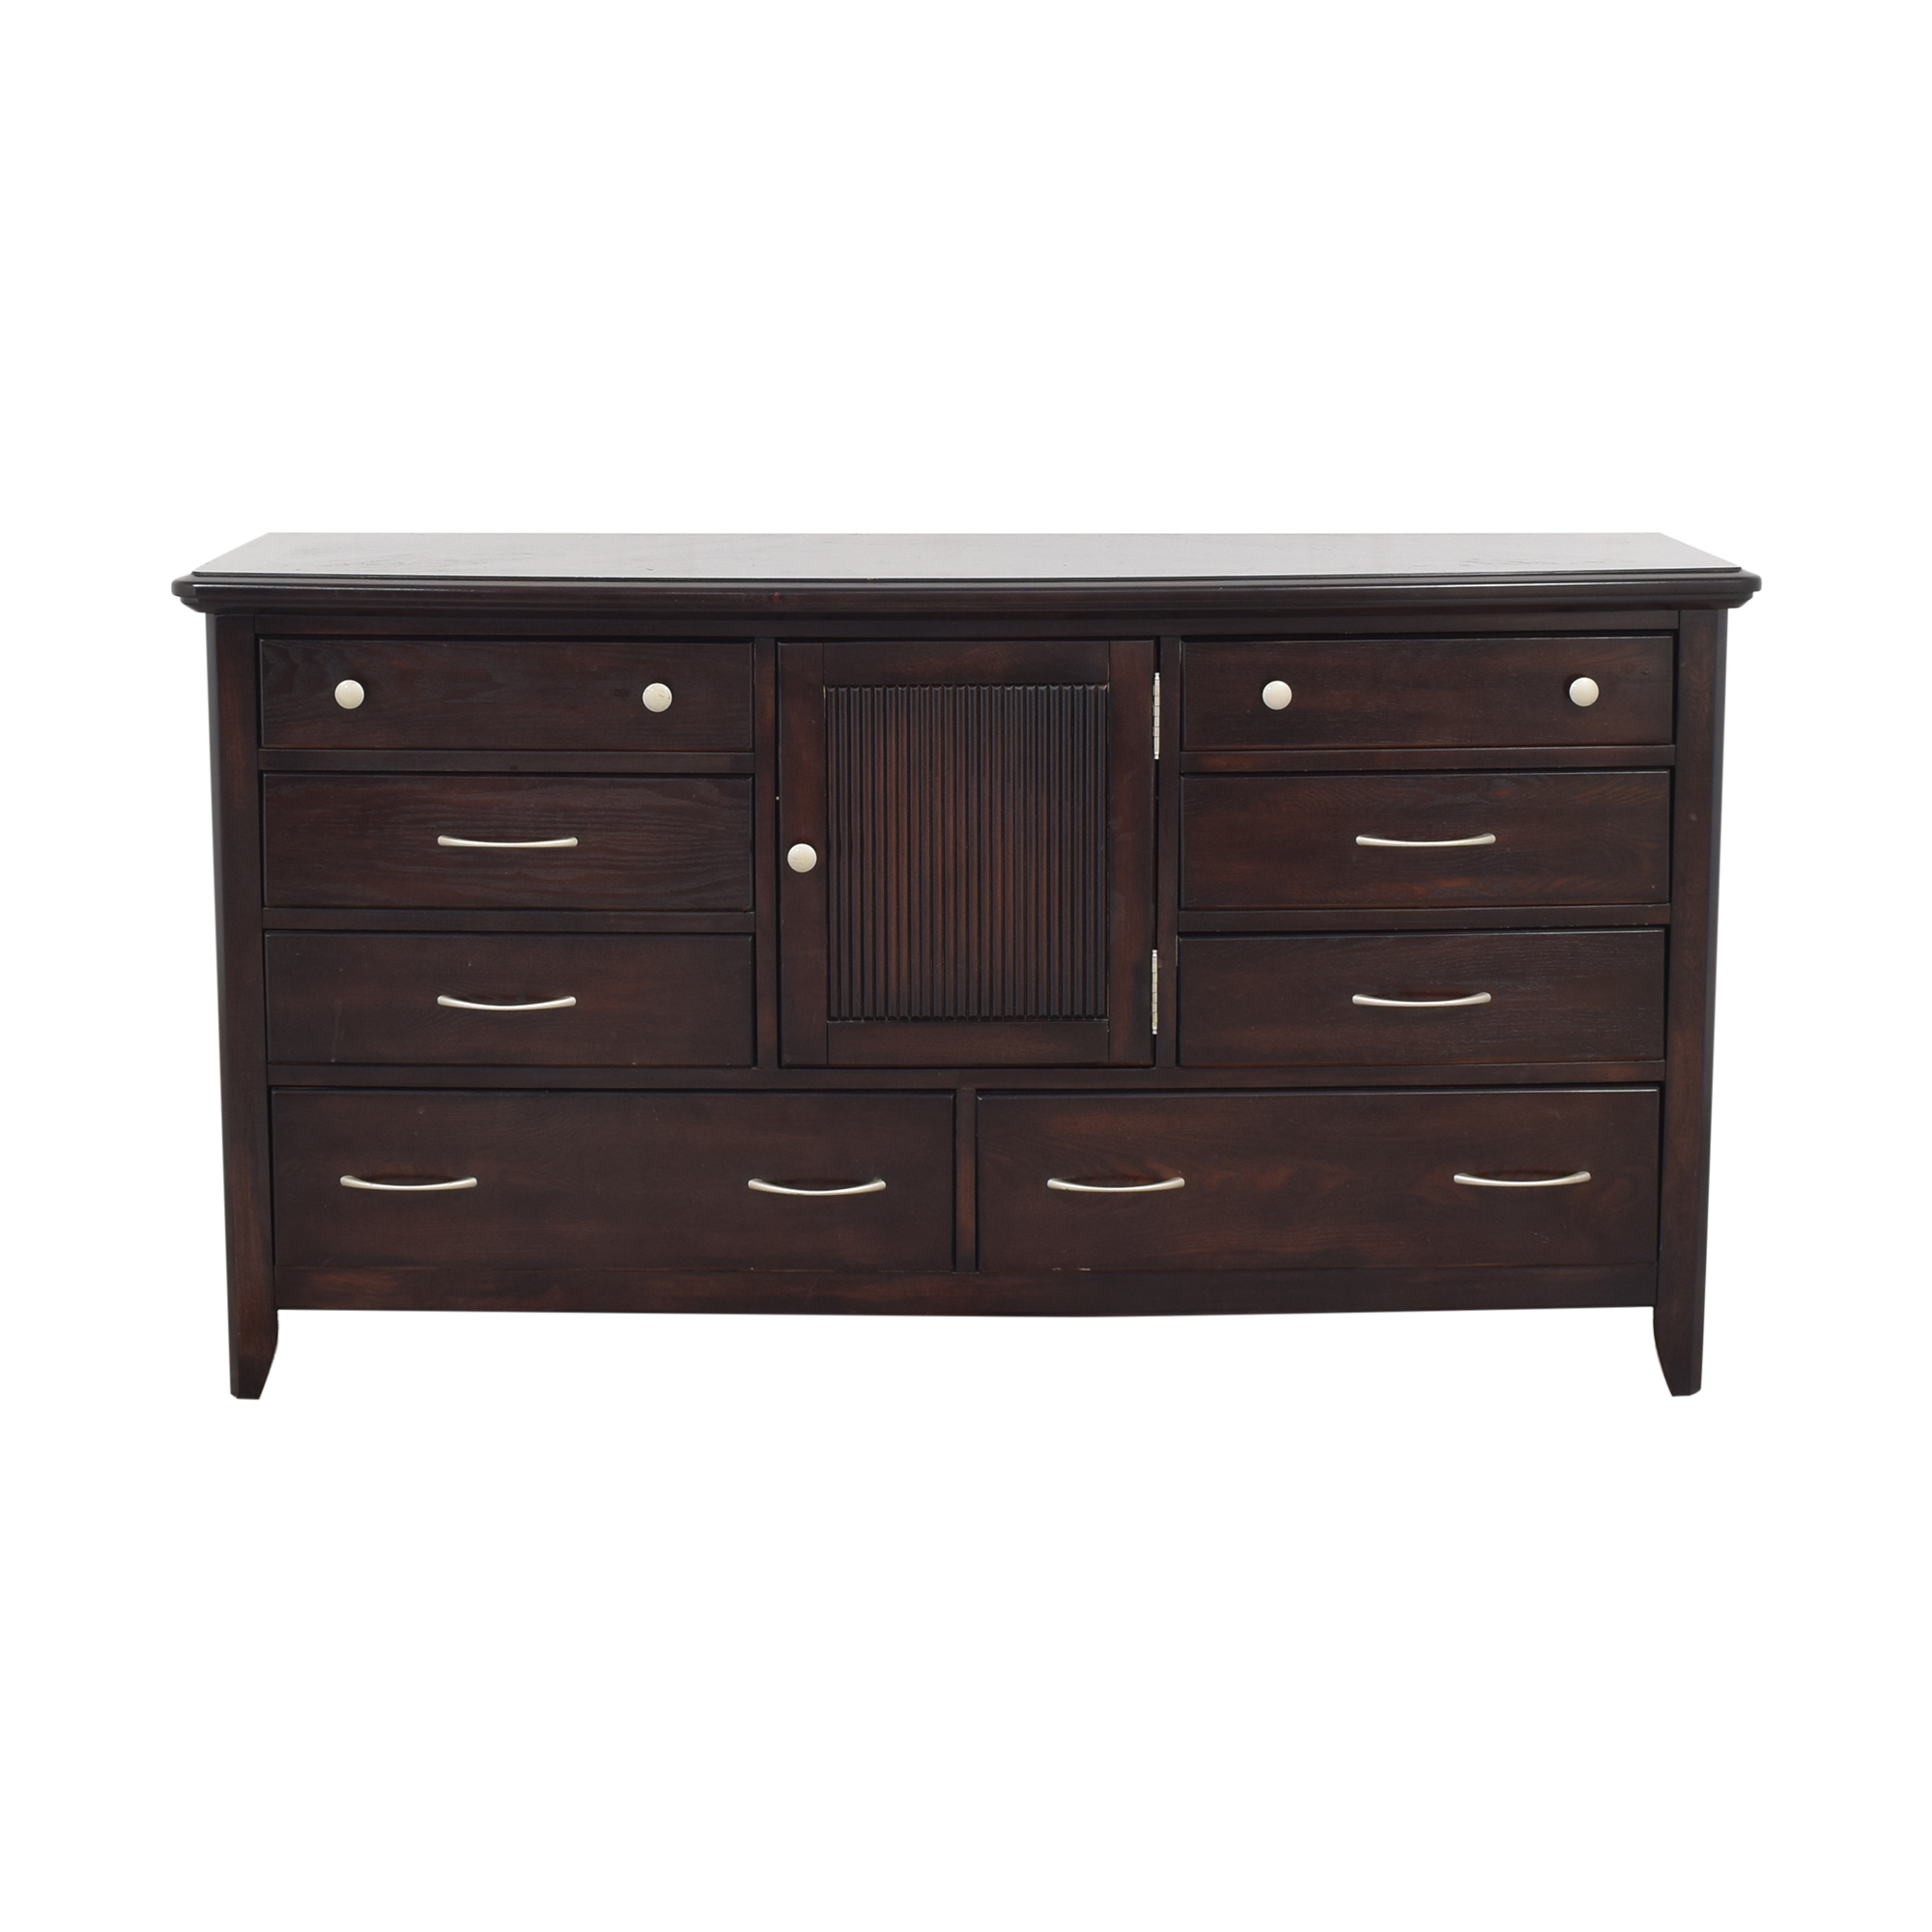 Raymour & Flanigan Raymour & Flanigan Wide Dresser price